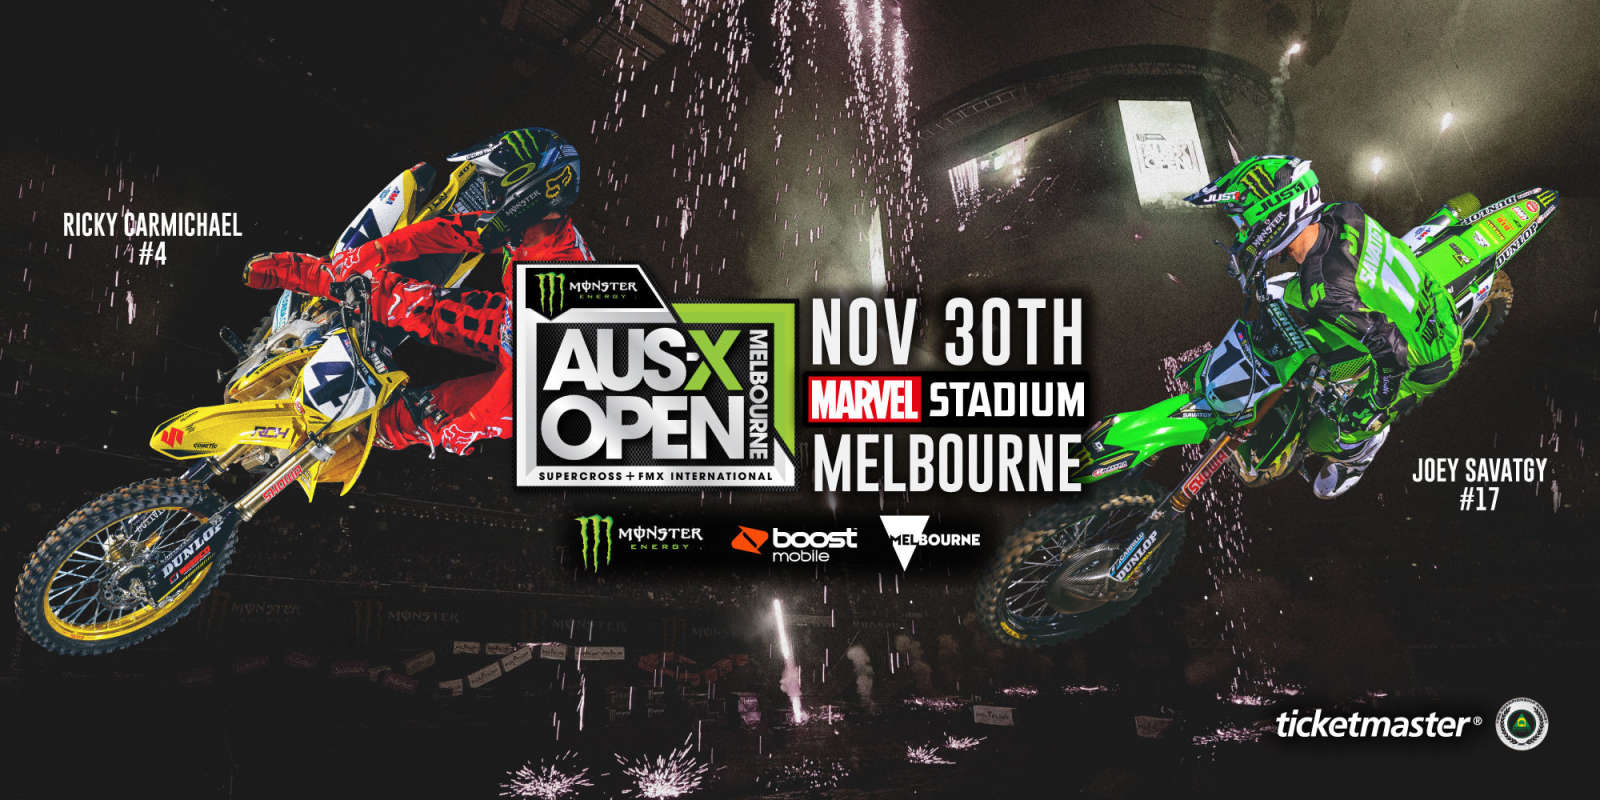 AUSX Open Web Banners for events page on ME.com